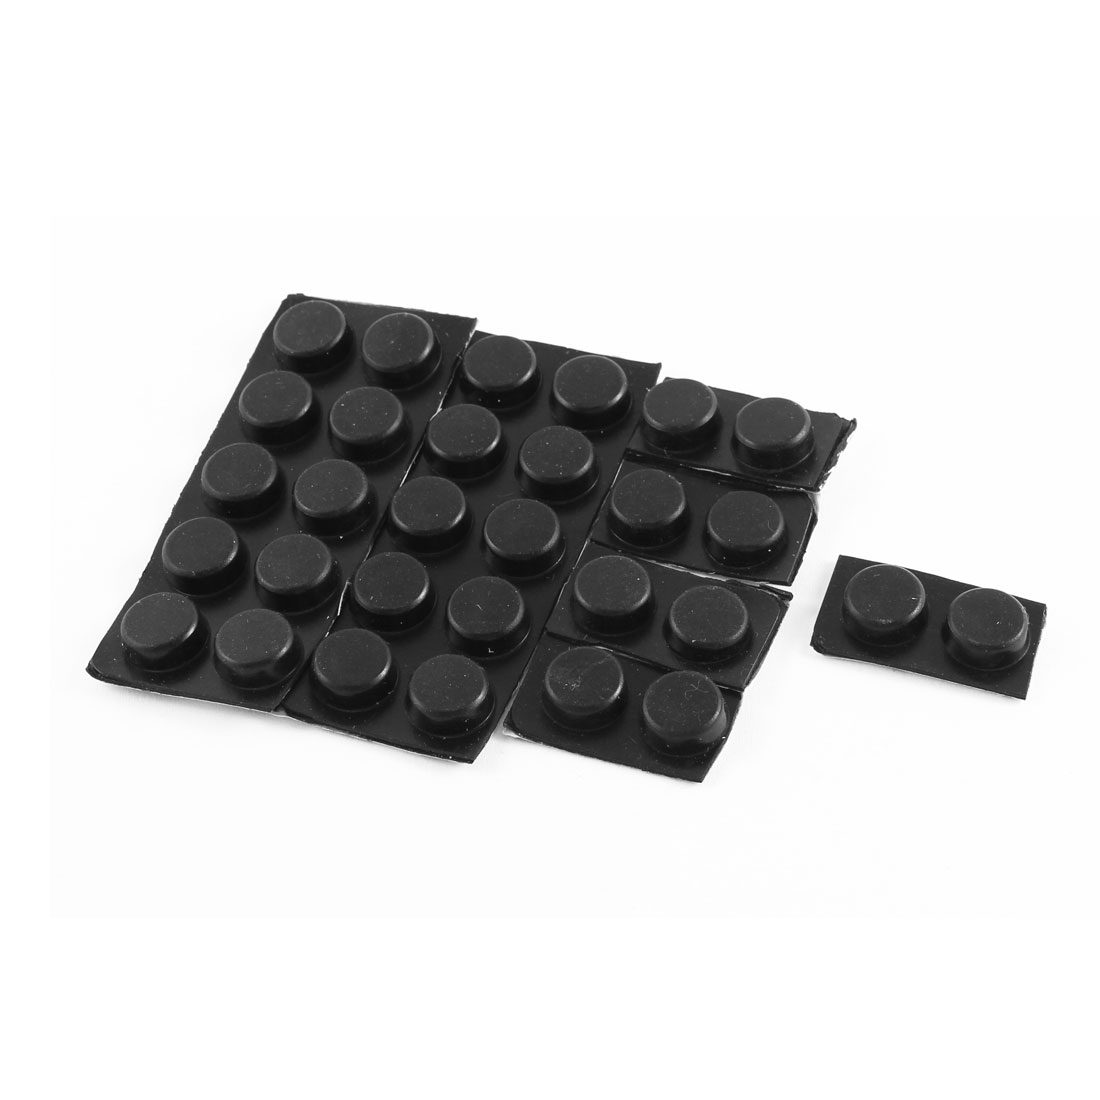 Sofa Chair Table Scratch Protector Round Rubber Adhesive Furniture